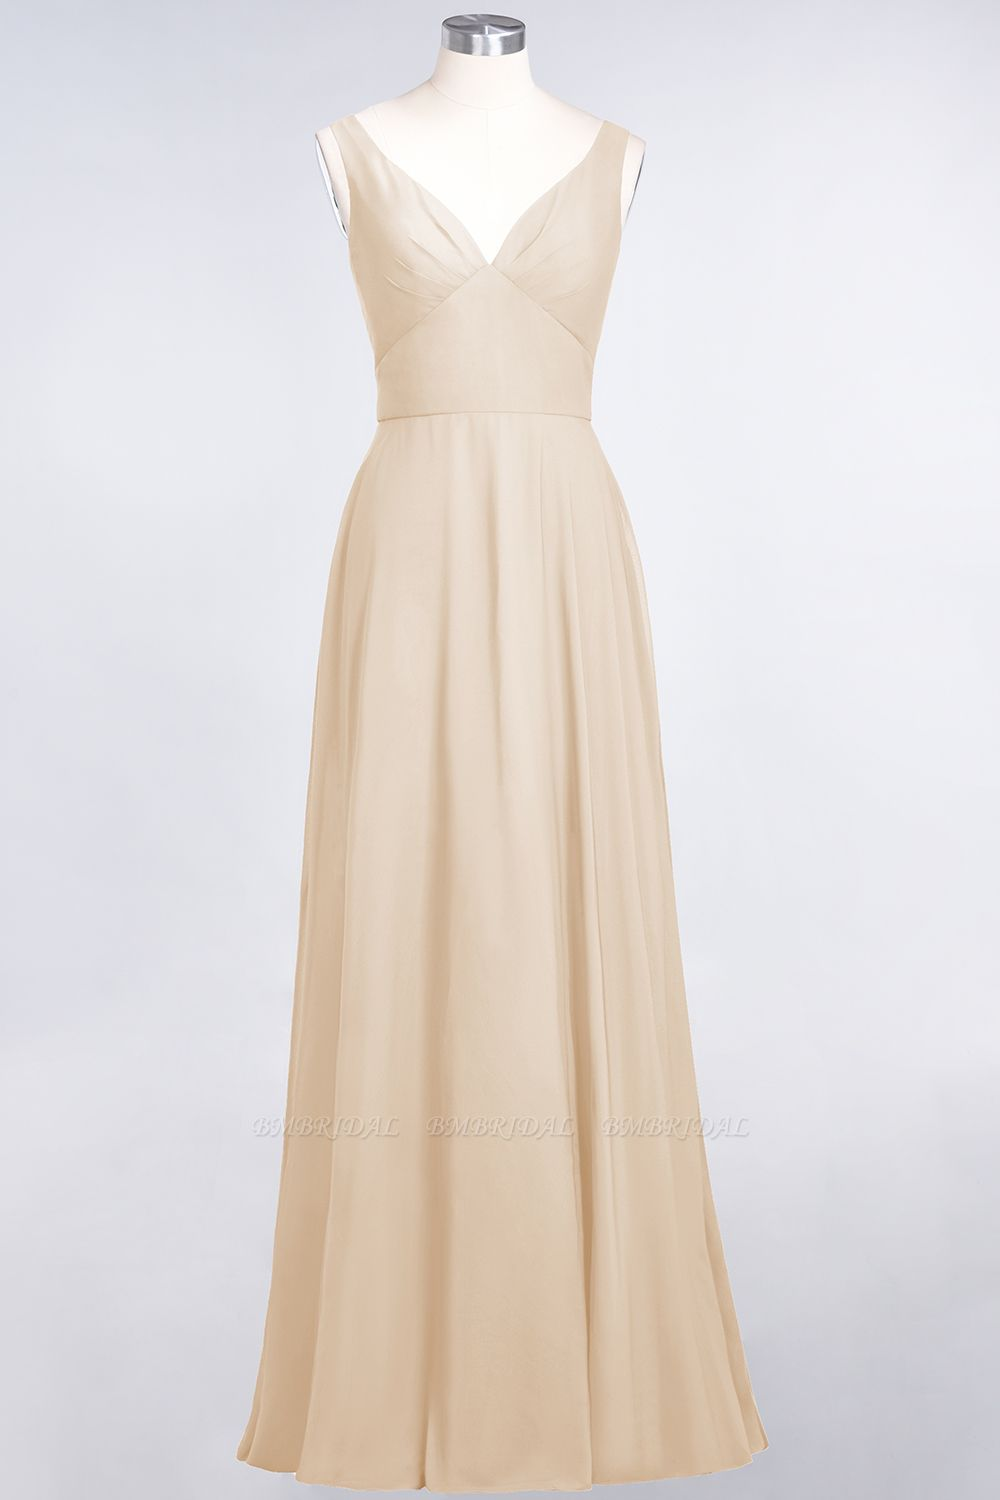 Chic Chiffon V-Neck Straps Ruffle Affordable Bridesmaid Dresses with Open Back